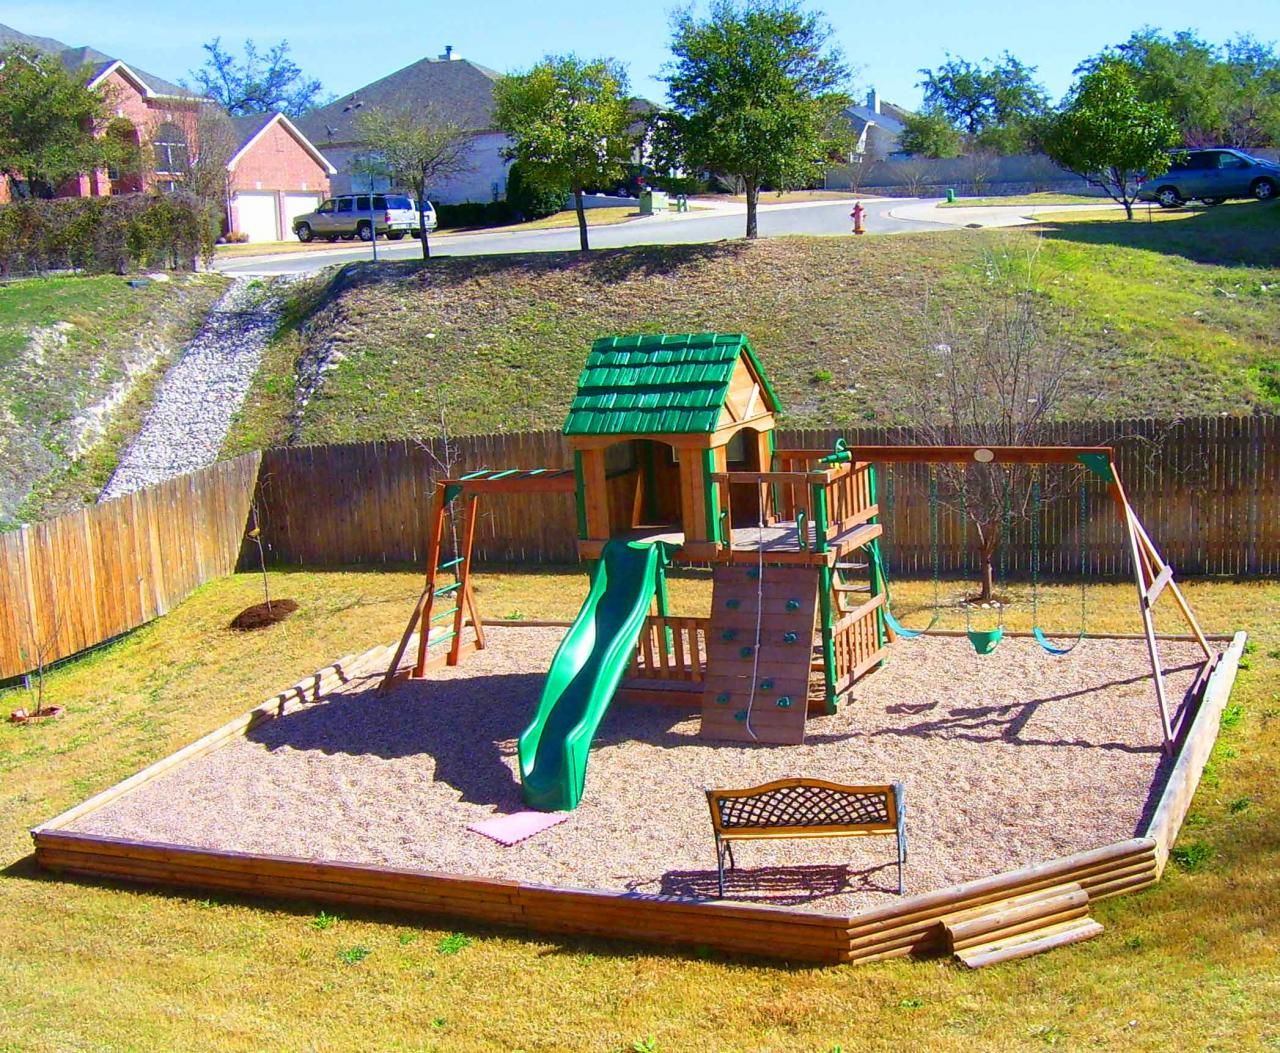 Pea gravel play area in backyard everlast contracting co for Play yard plans